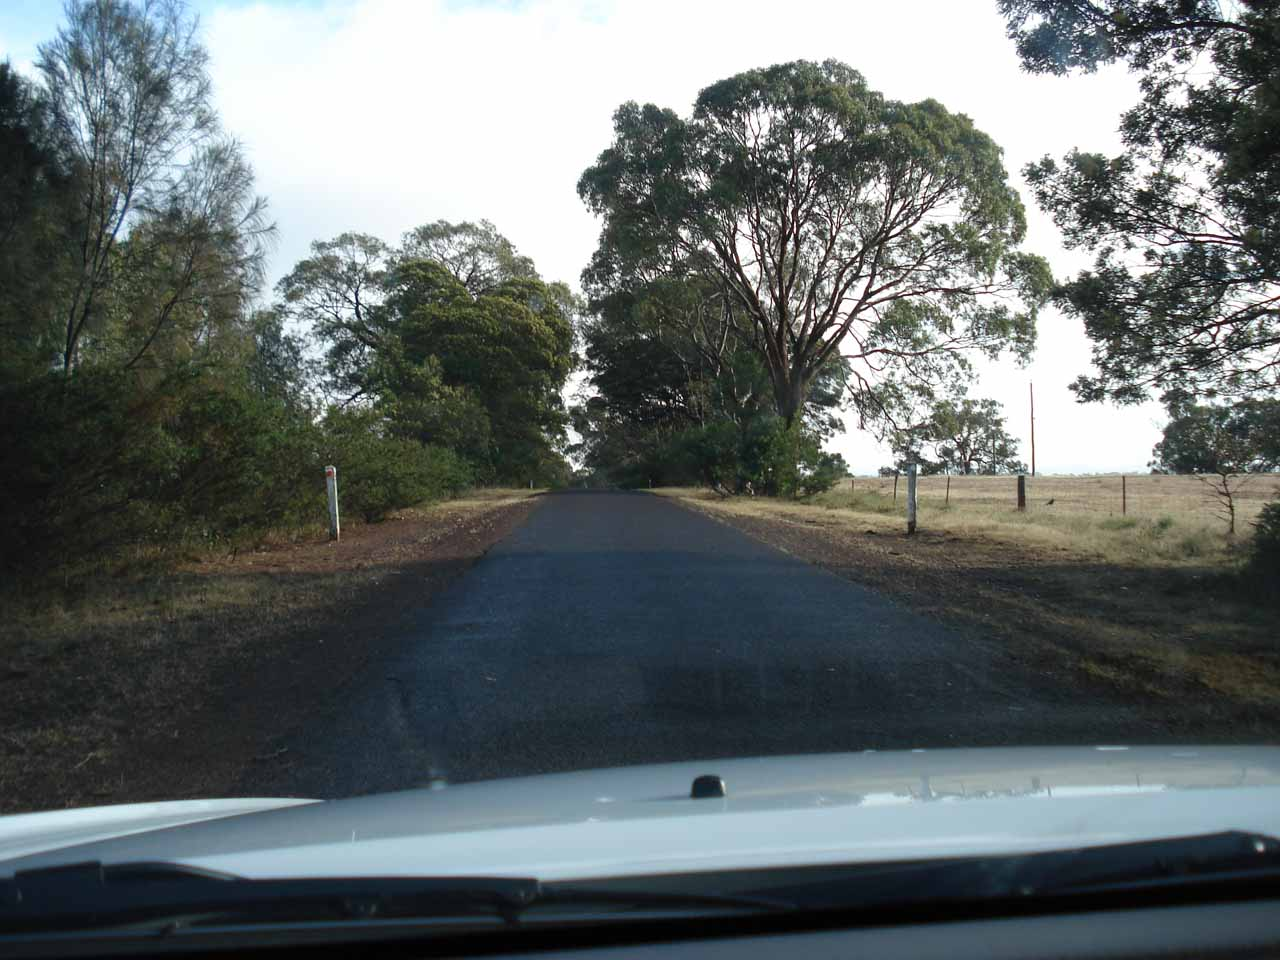 On the Wannon-Nigretta Falls Road bound for Nigretta Falls